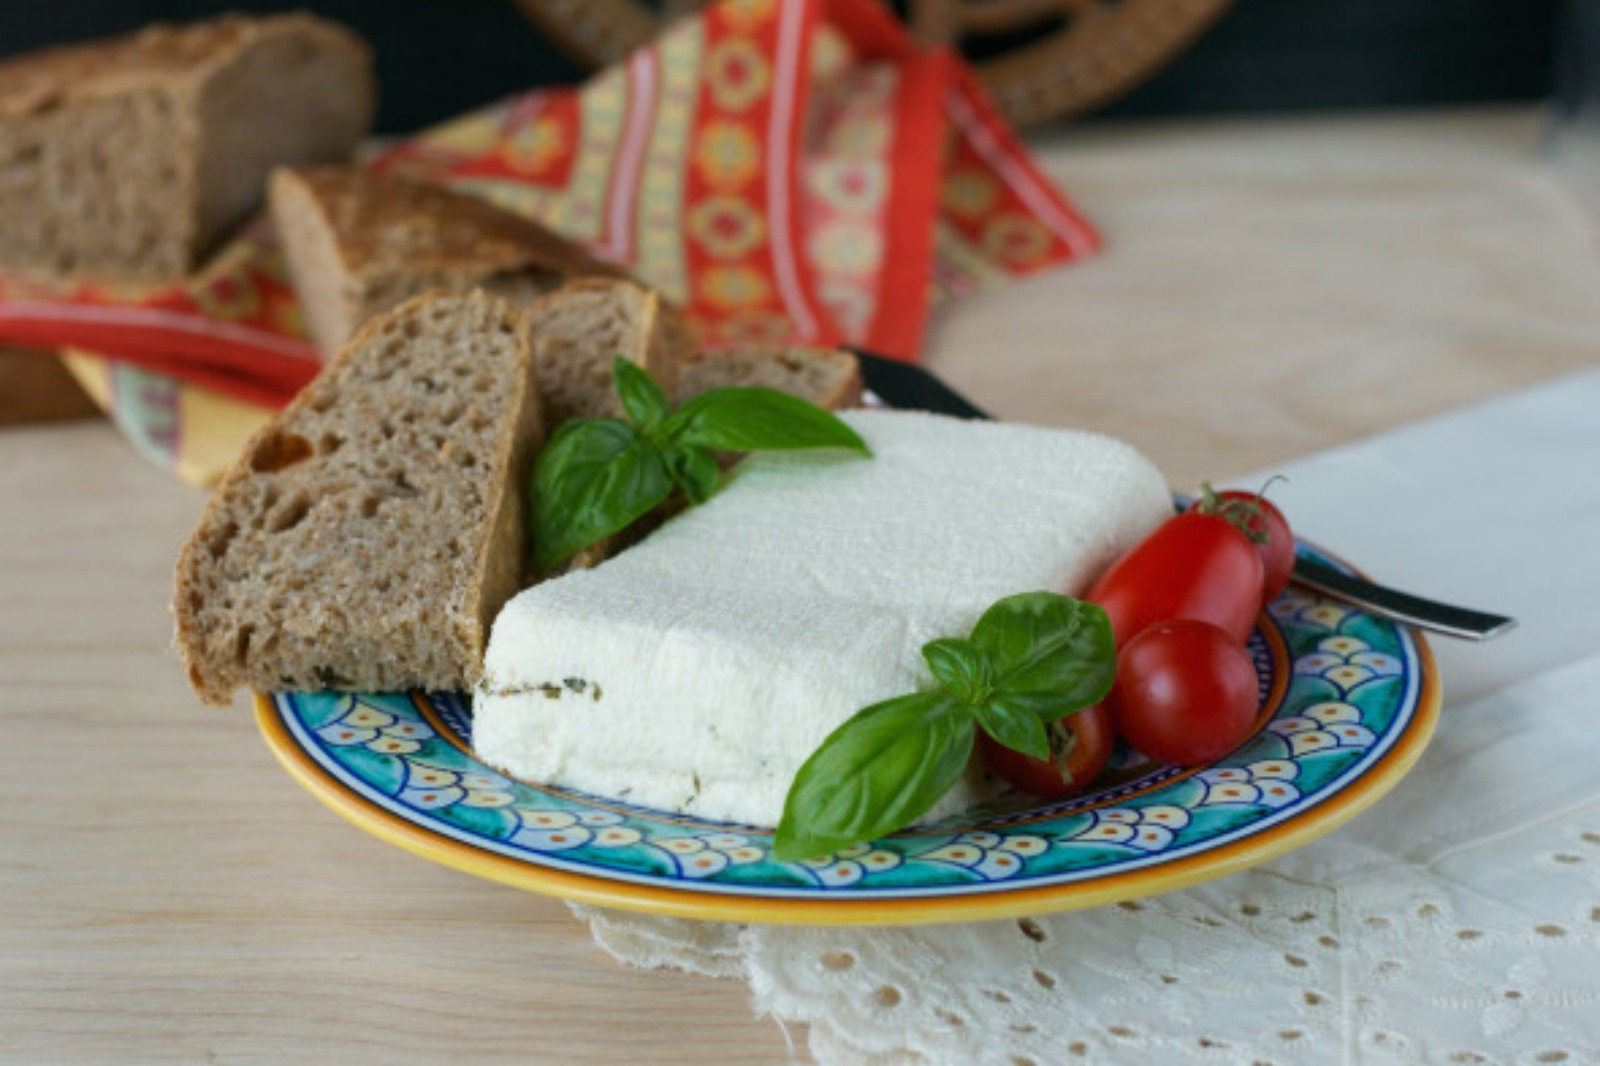 Macadamia Nut Pepper-Herb Feta